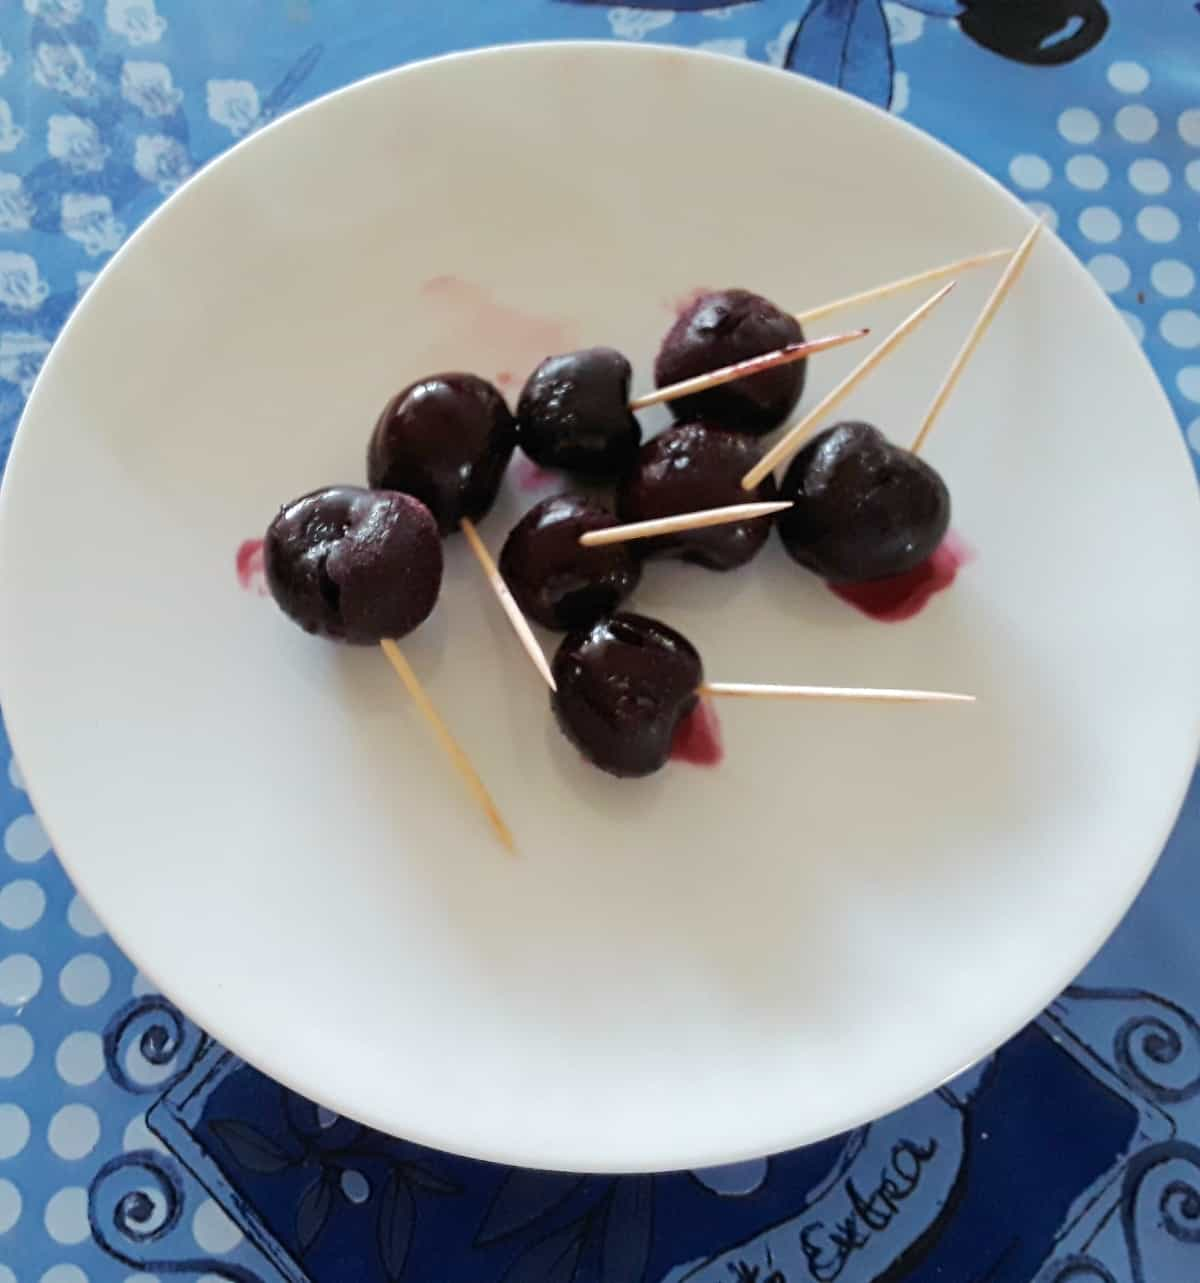 Thawed cherries skewered with toothpicks on white plate.